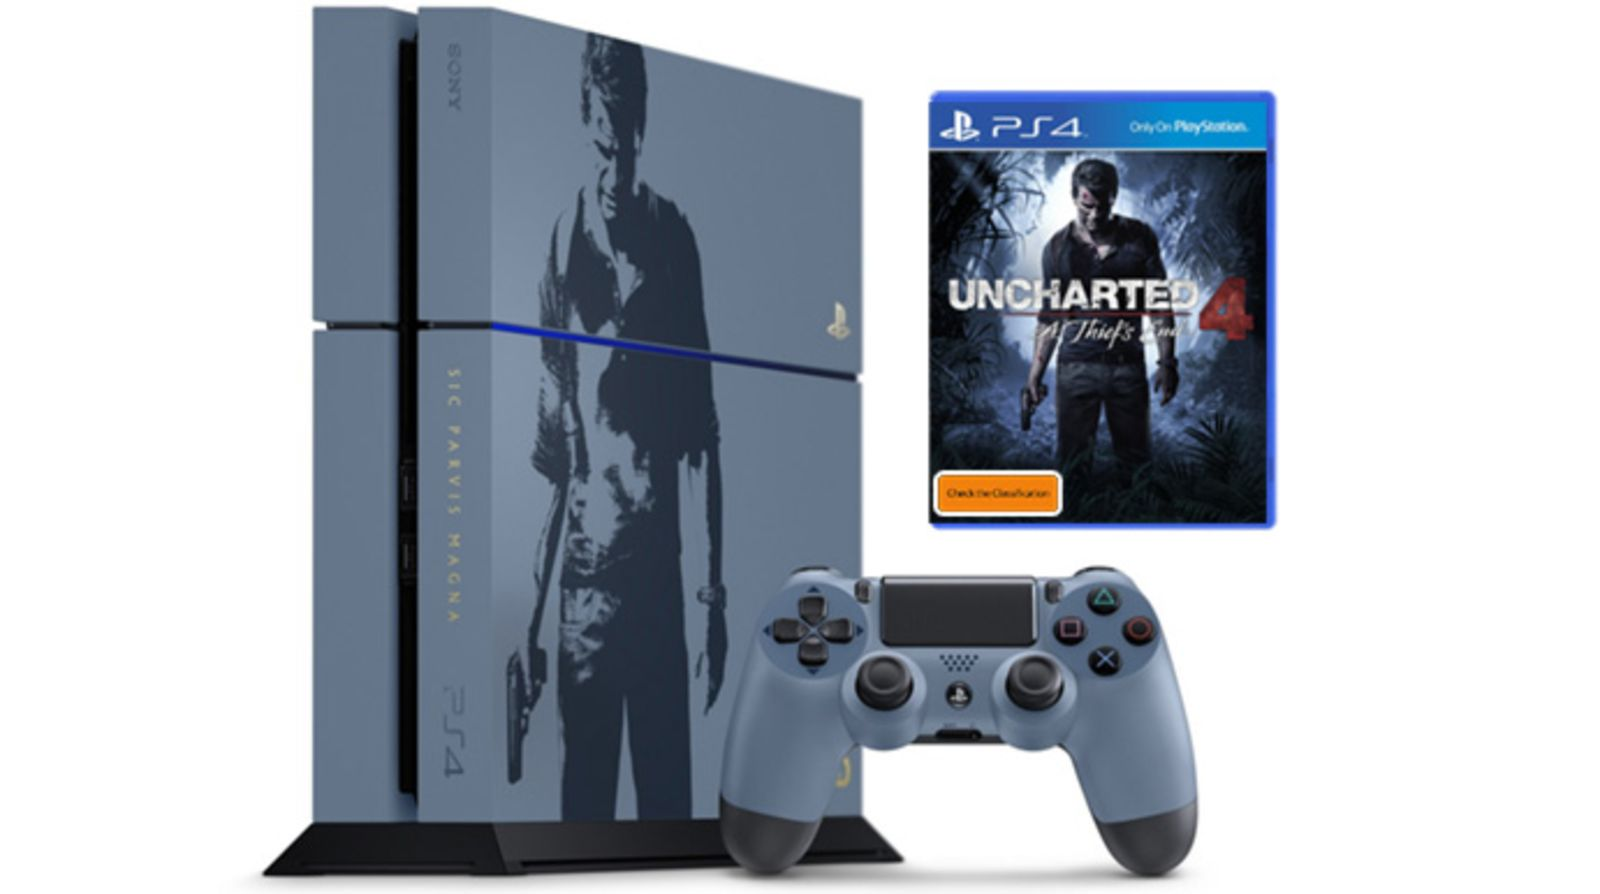 Uncharted 4 Ps4 Bundle Announced